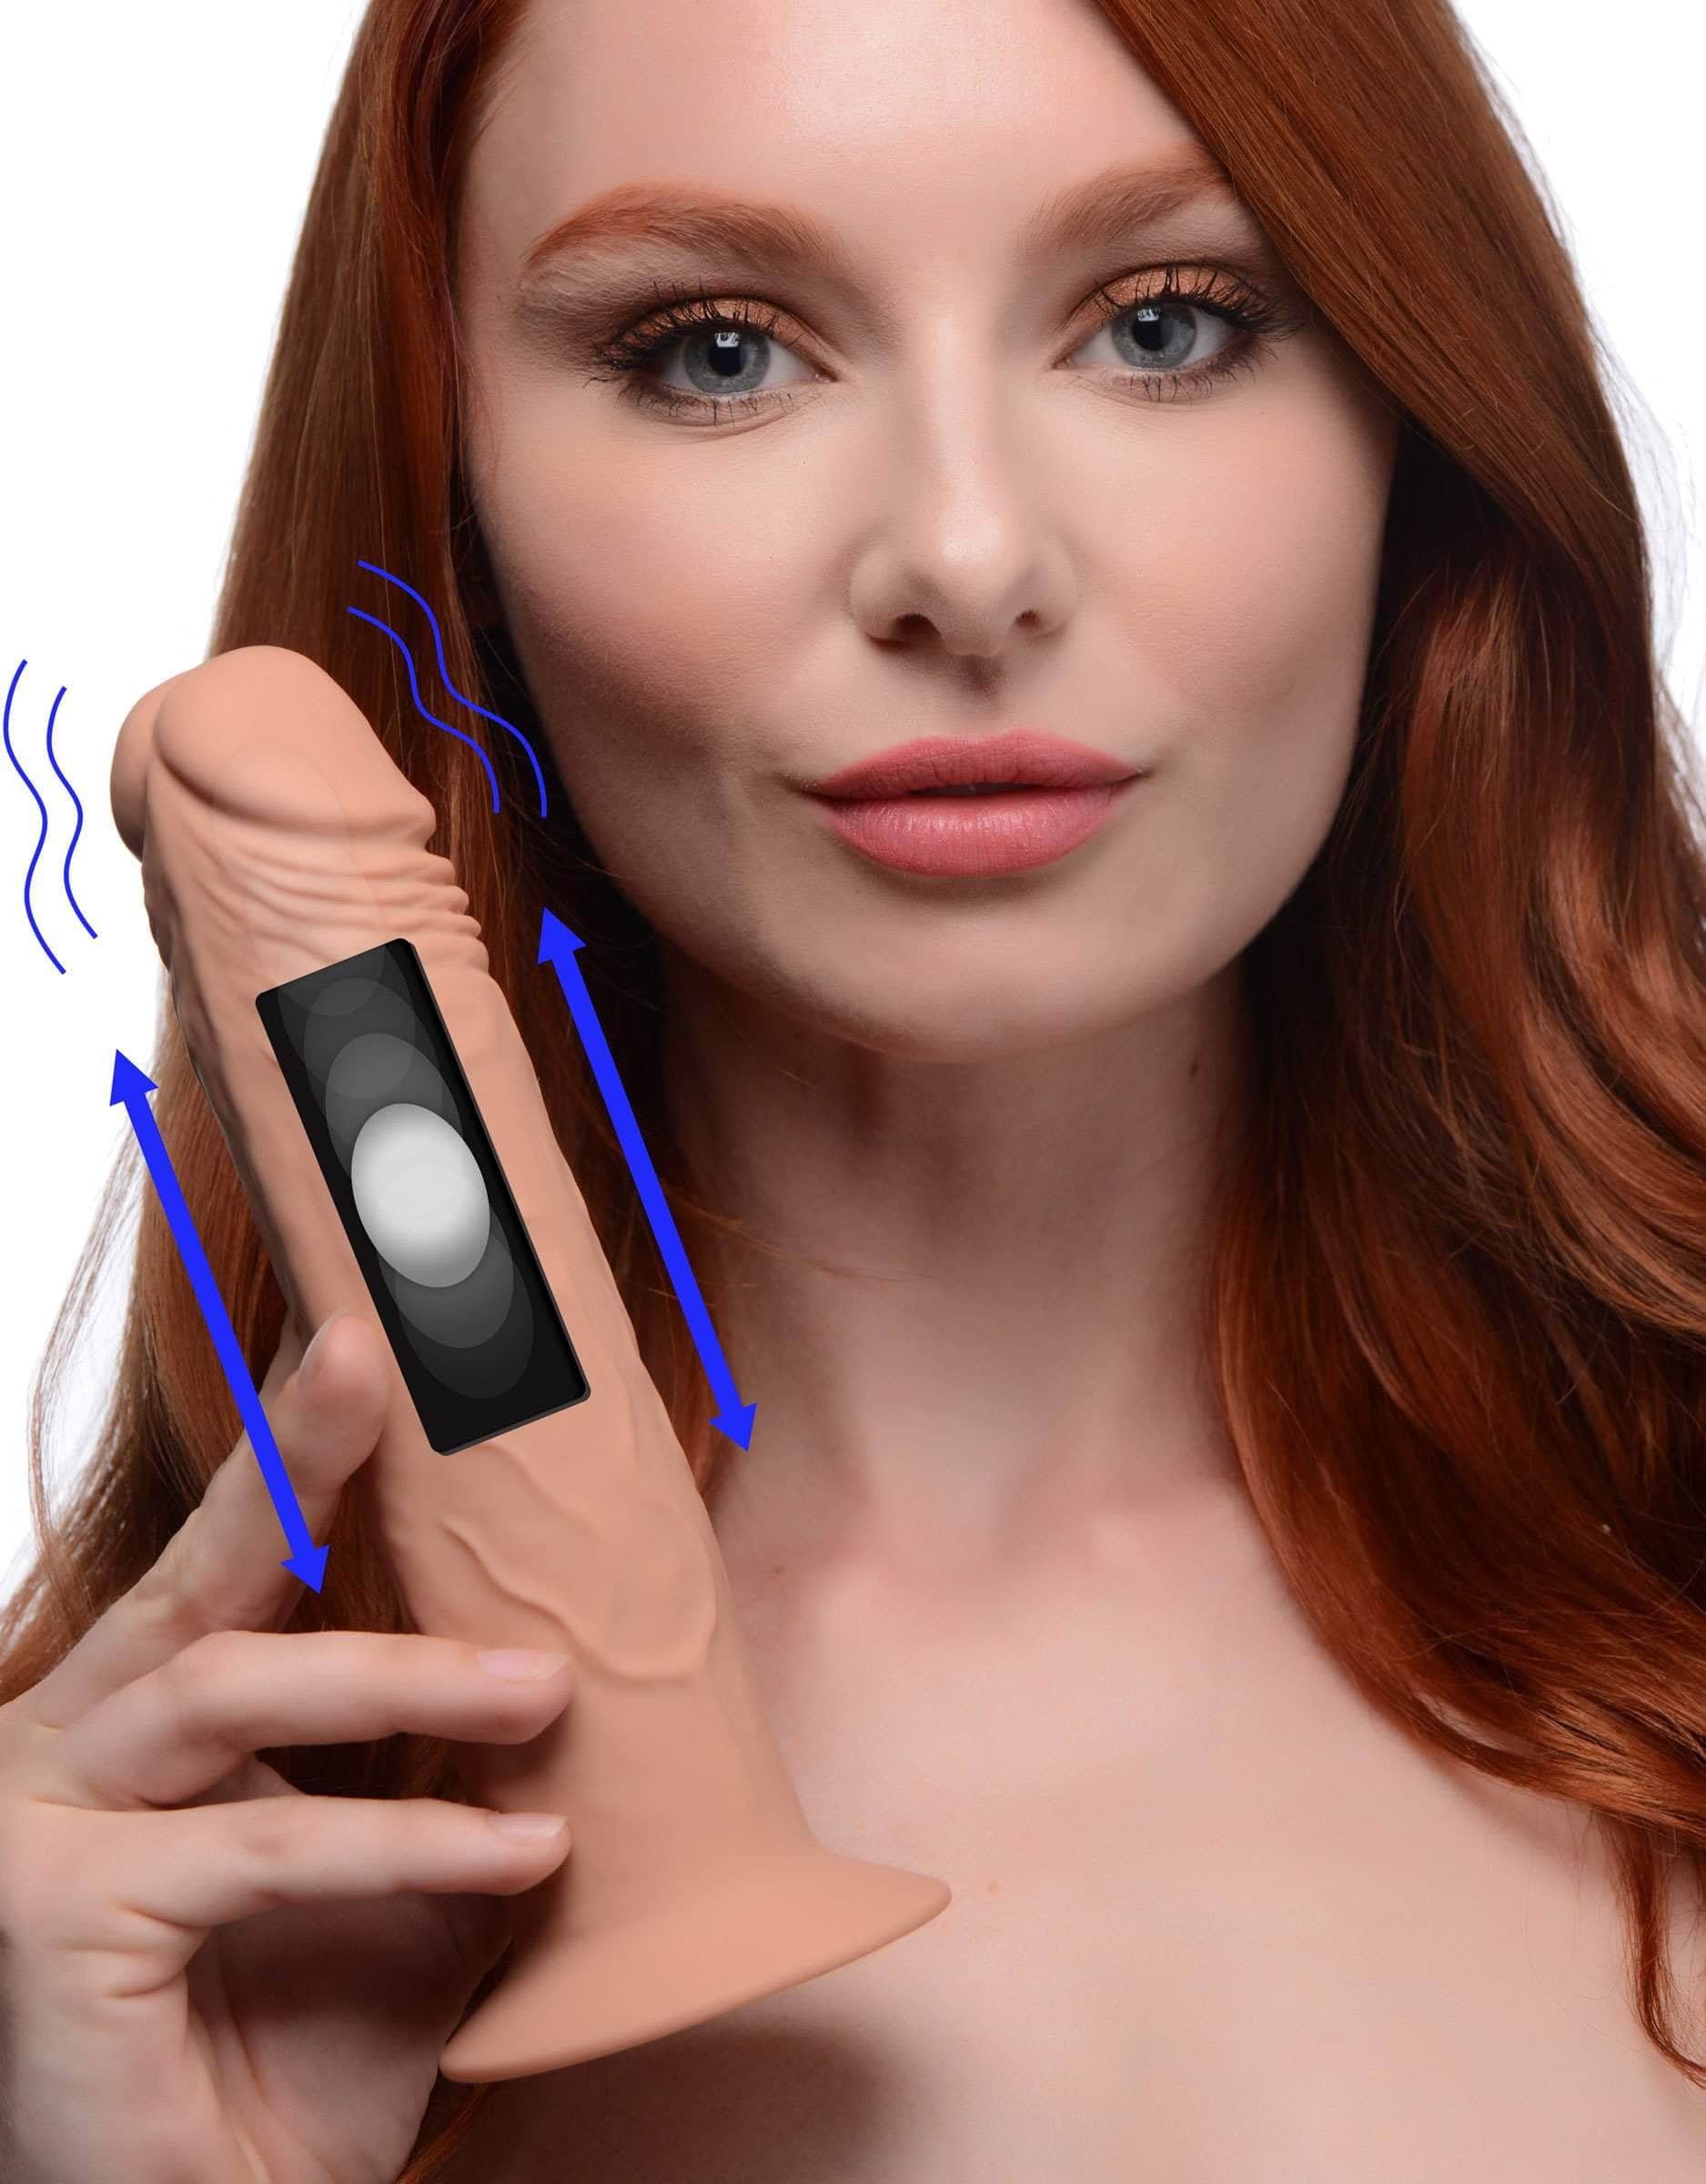 7x Remote Control Vibrating And Thumping Dildo - Medium